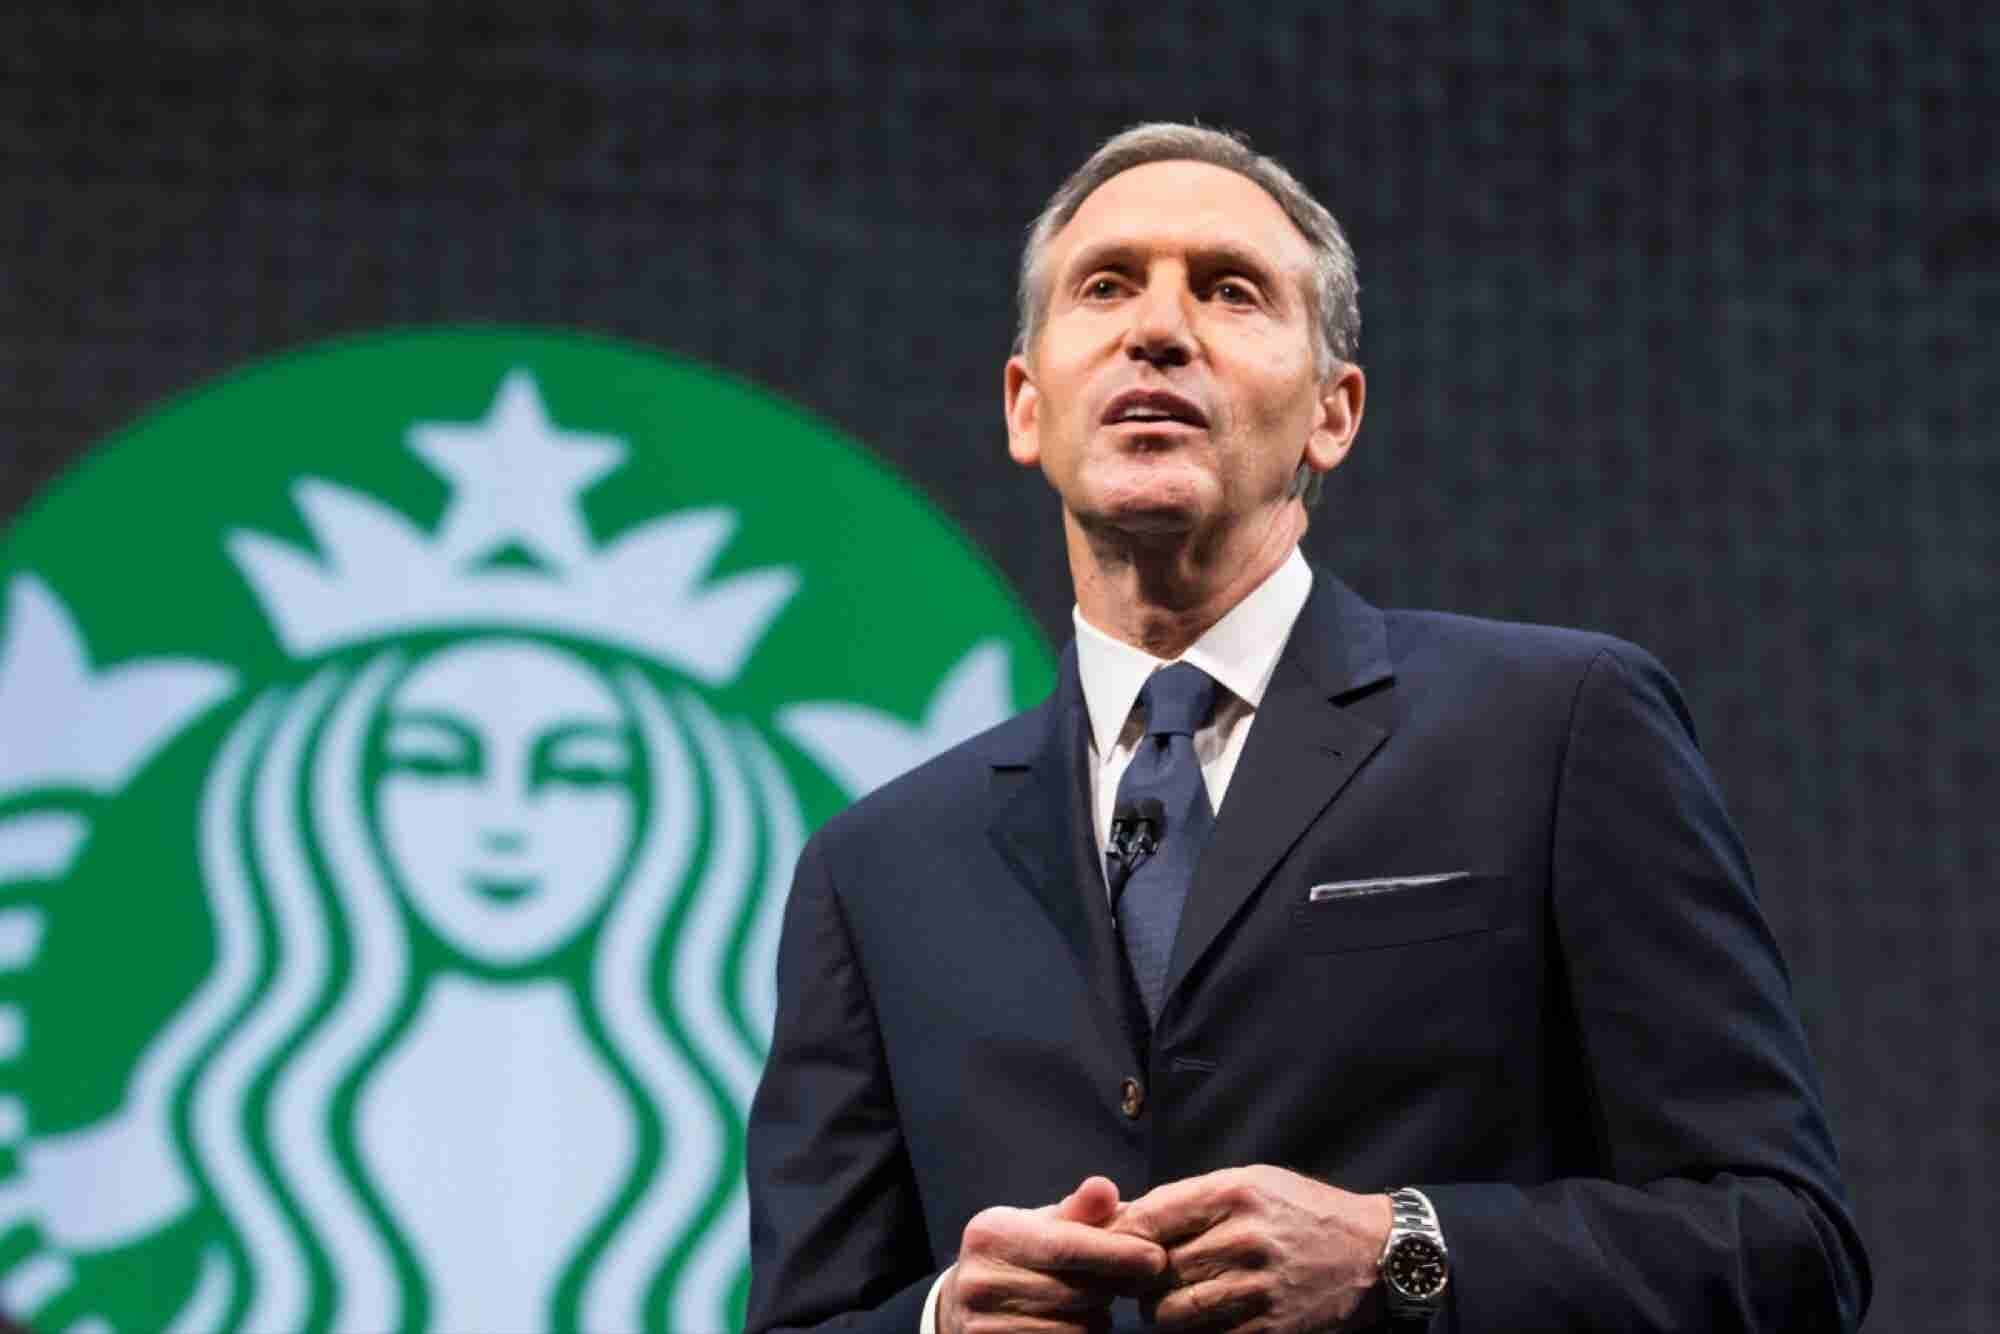 How Starbucks CEO Transformed a Small Coffee Bean Store Into a Massively Successful Worldwide Brand